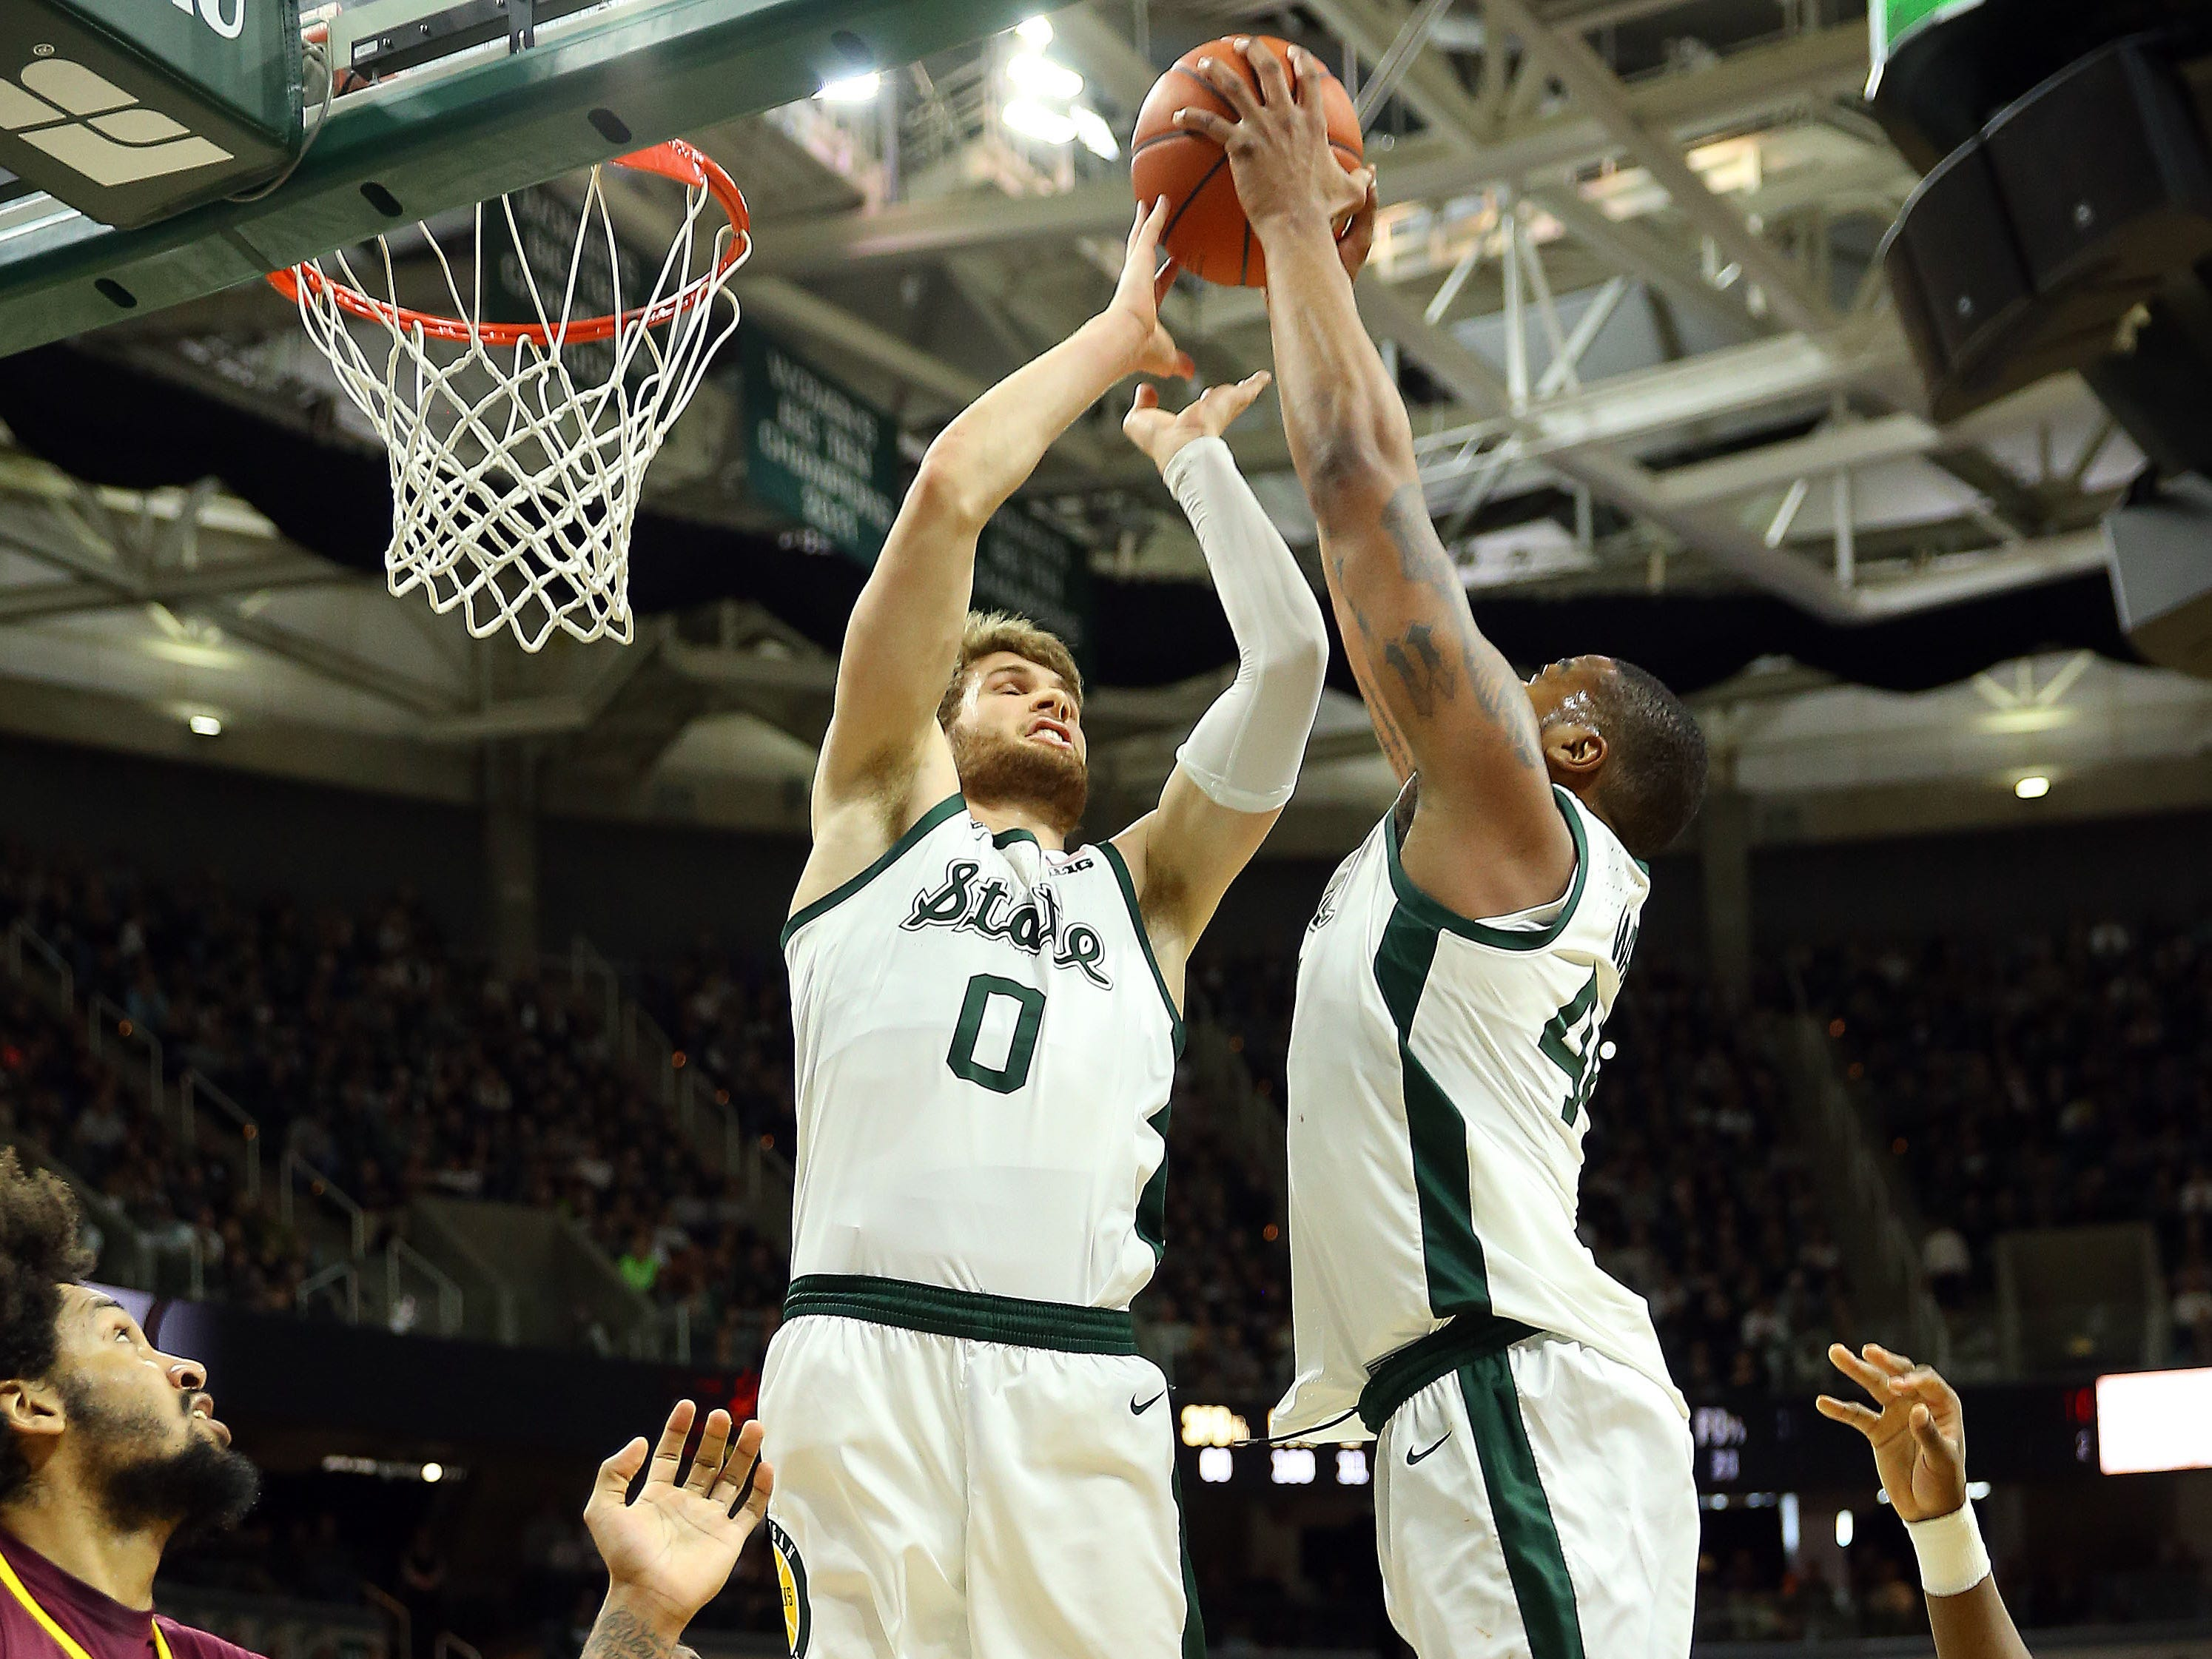 Feb 9, 2019; East Lansing, MI, USA; Michigan State Spartans forward Kyle Ahrens (0) and forward Nick Ward (44) fight for a rebound during the first half against the Minnesota Golden Gophers at the Breslin Center. Mandatory Credit: Mike Carter-USA TODAY Sports